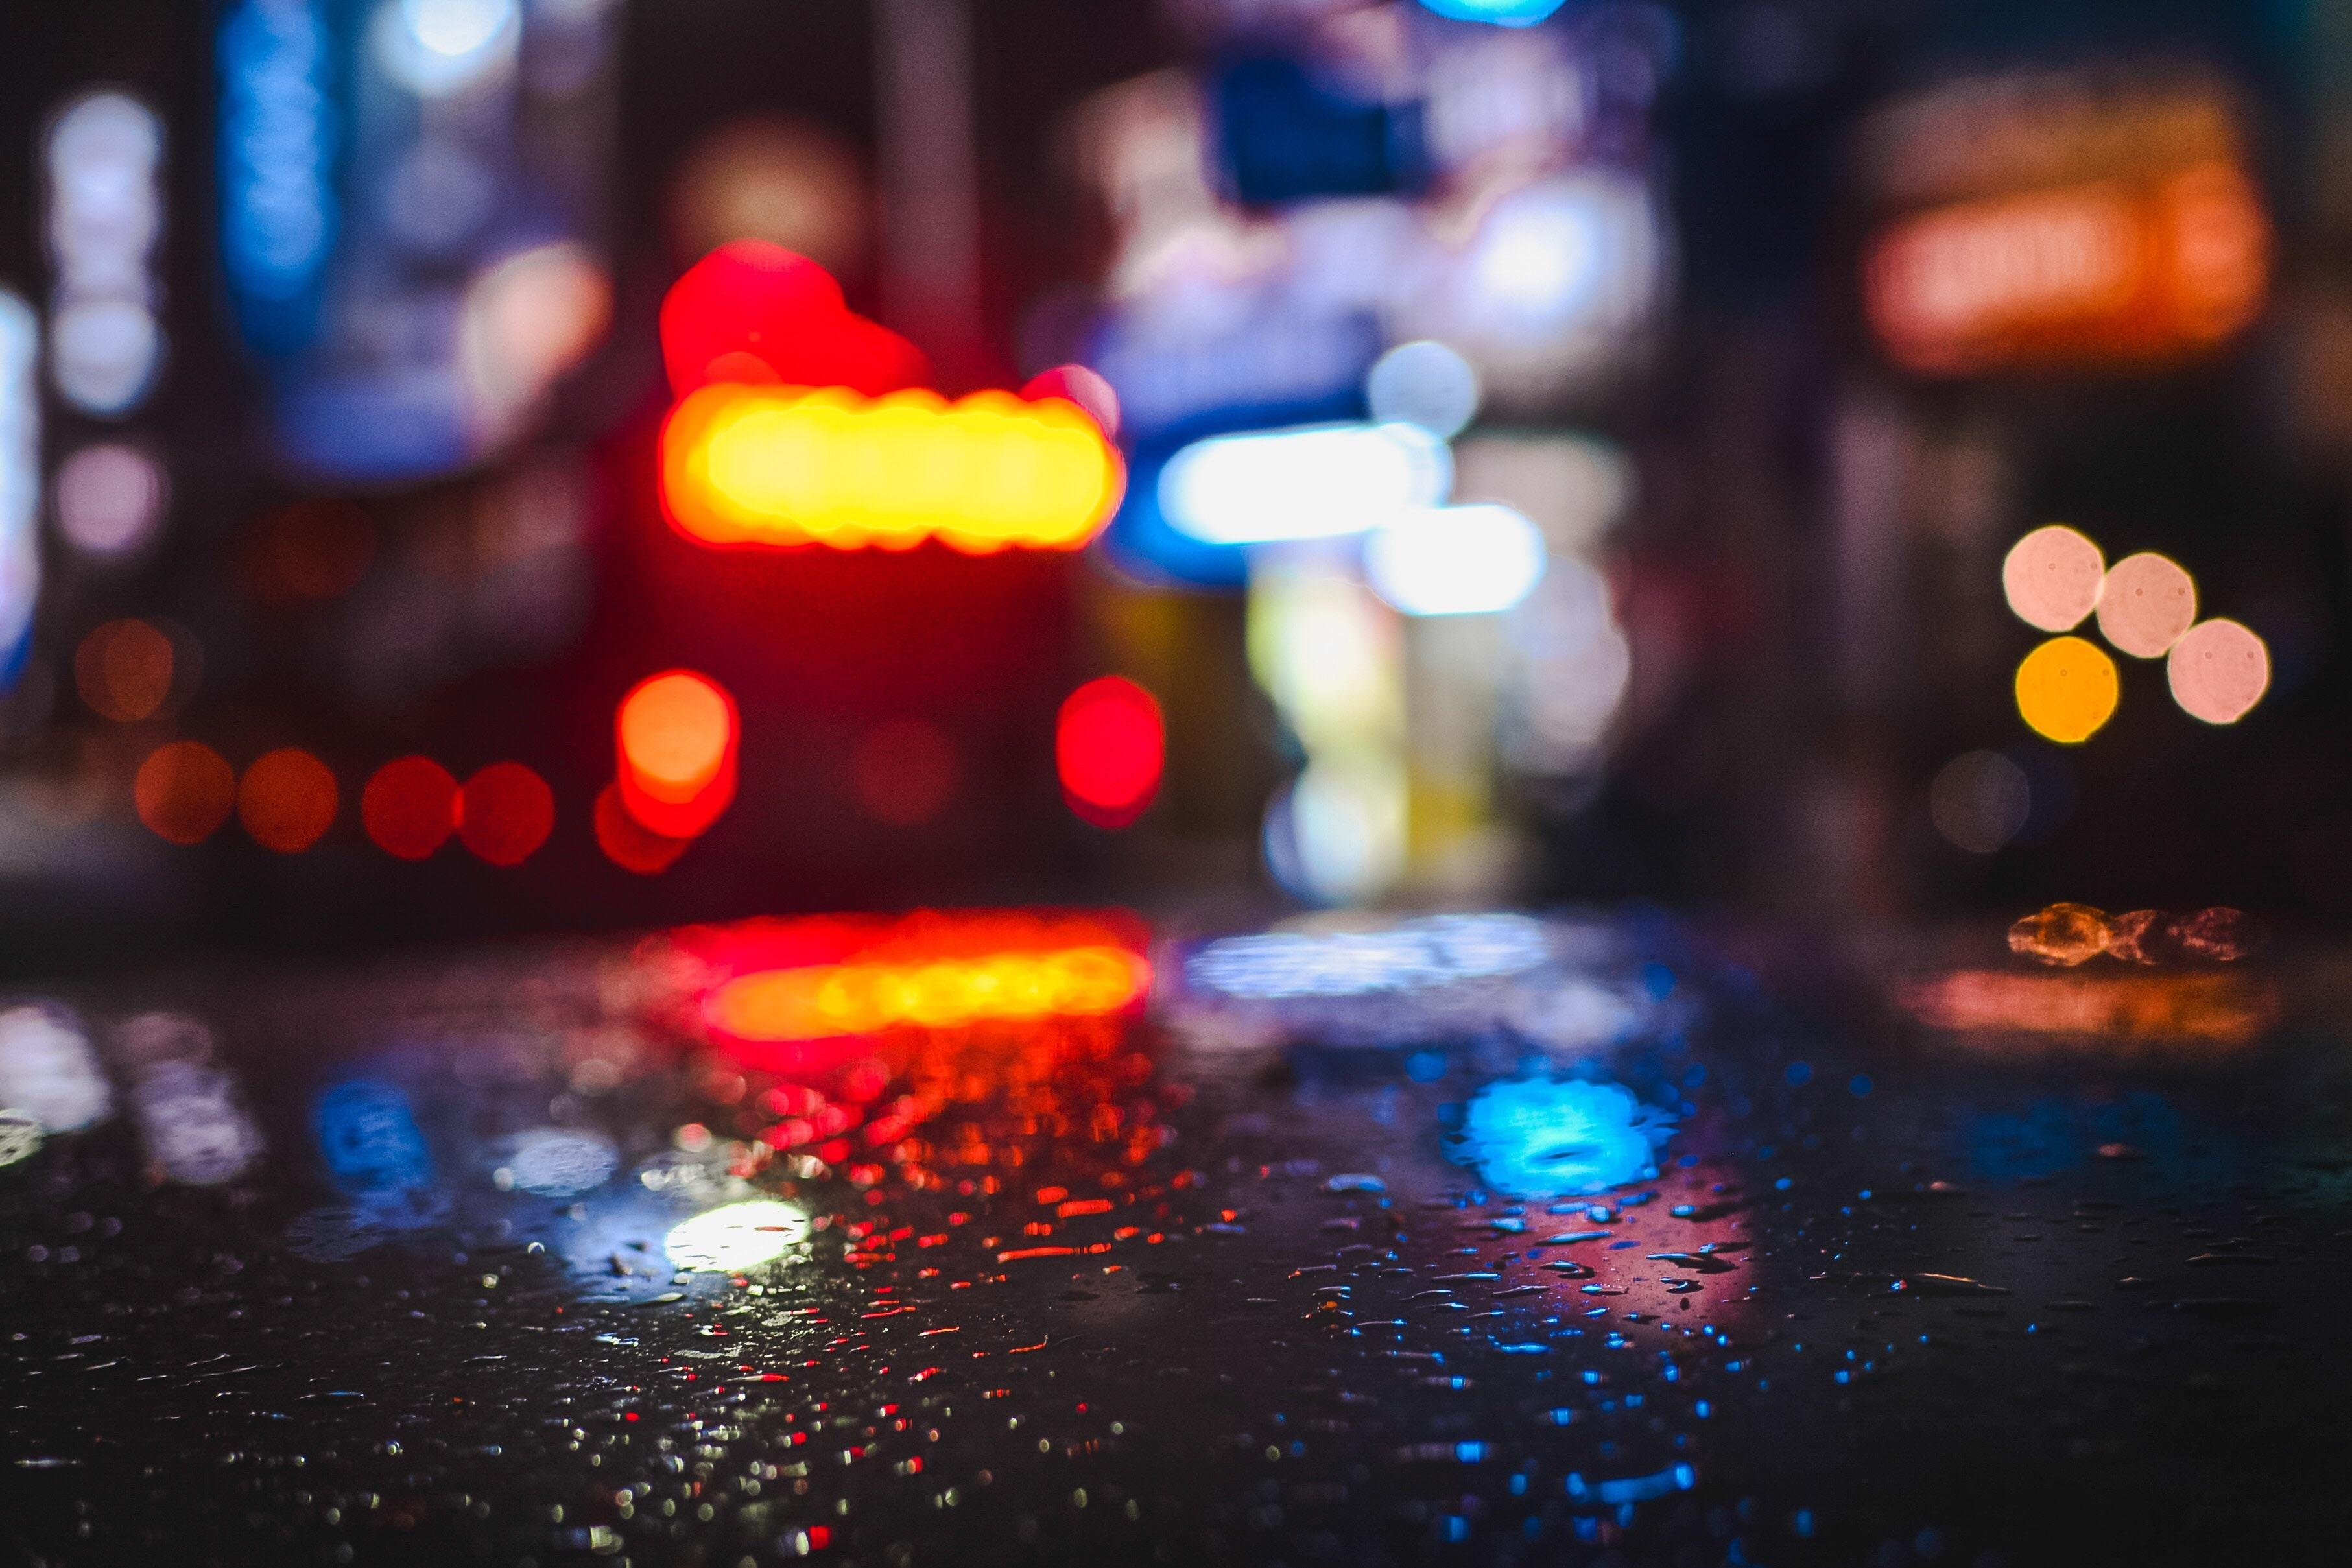 rainy wallpapers, photos and desktop backgrounds up to 8K ...